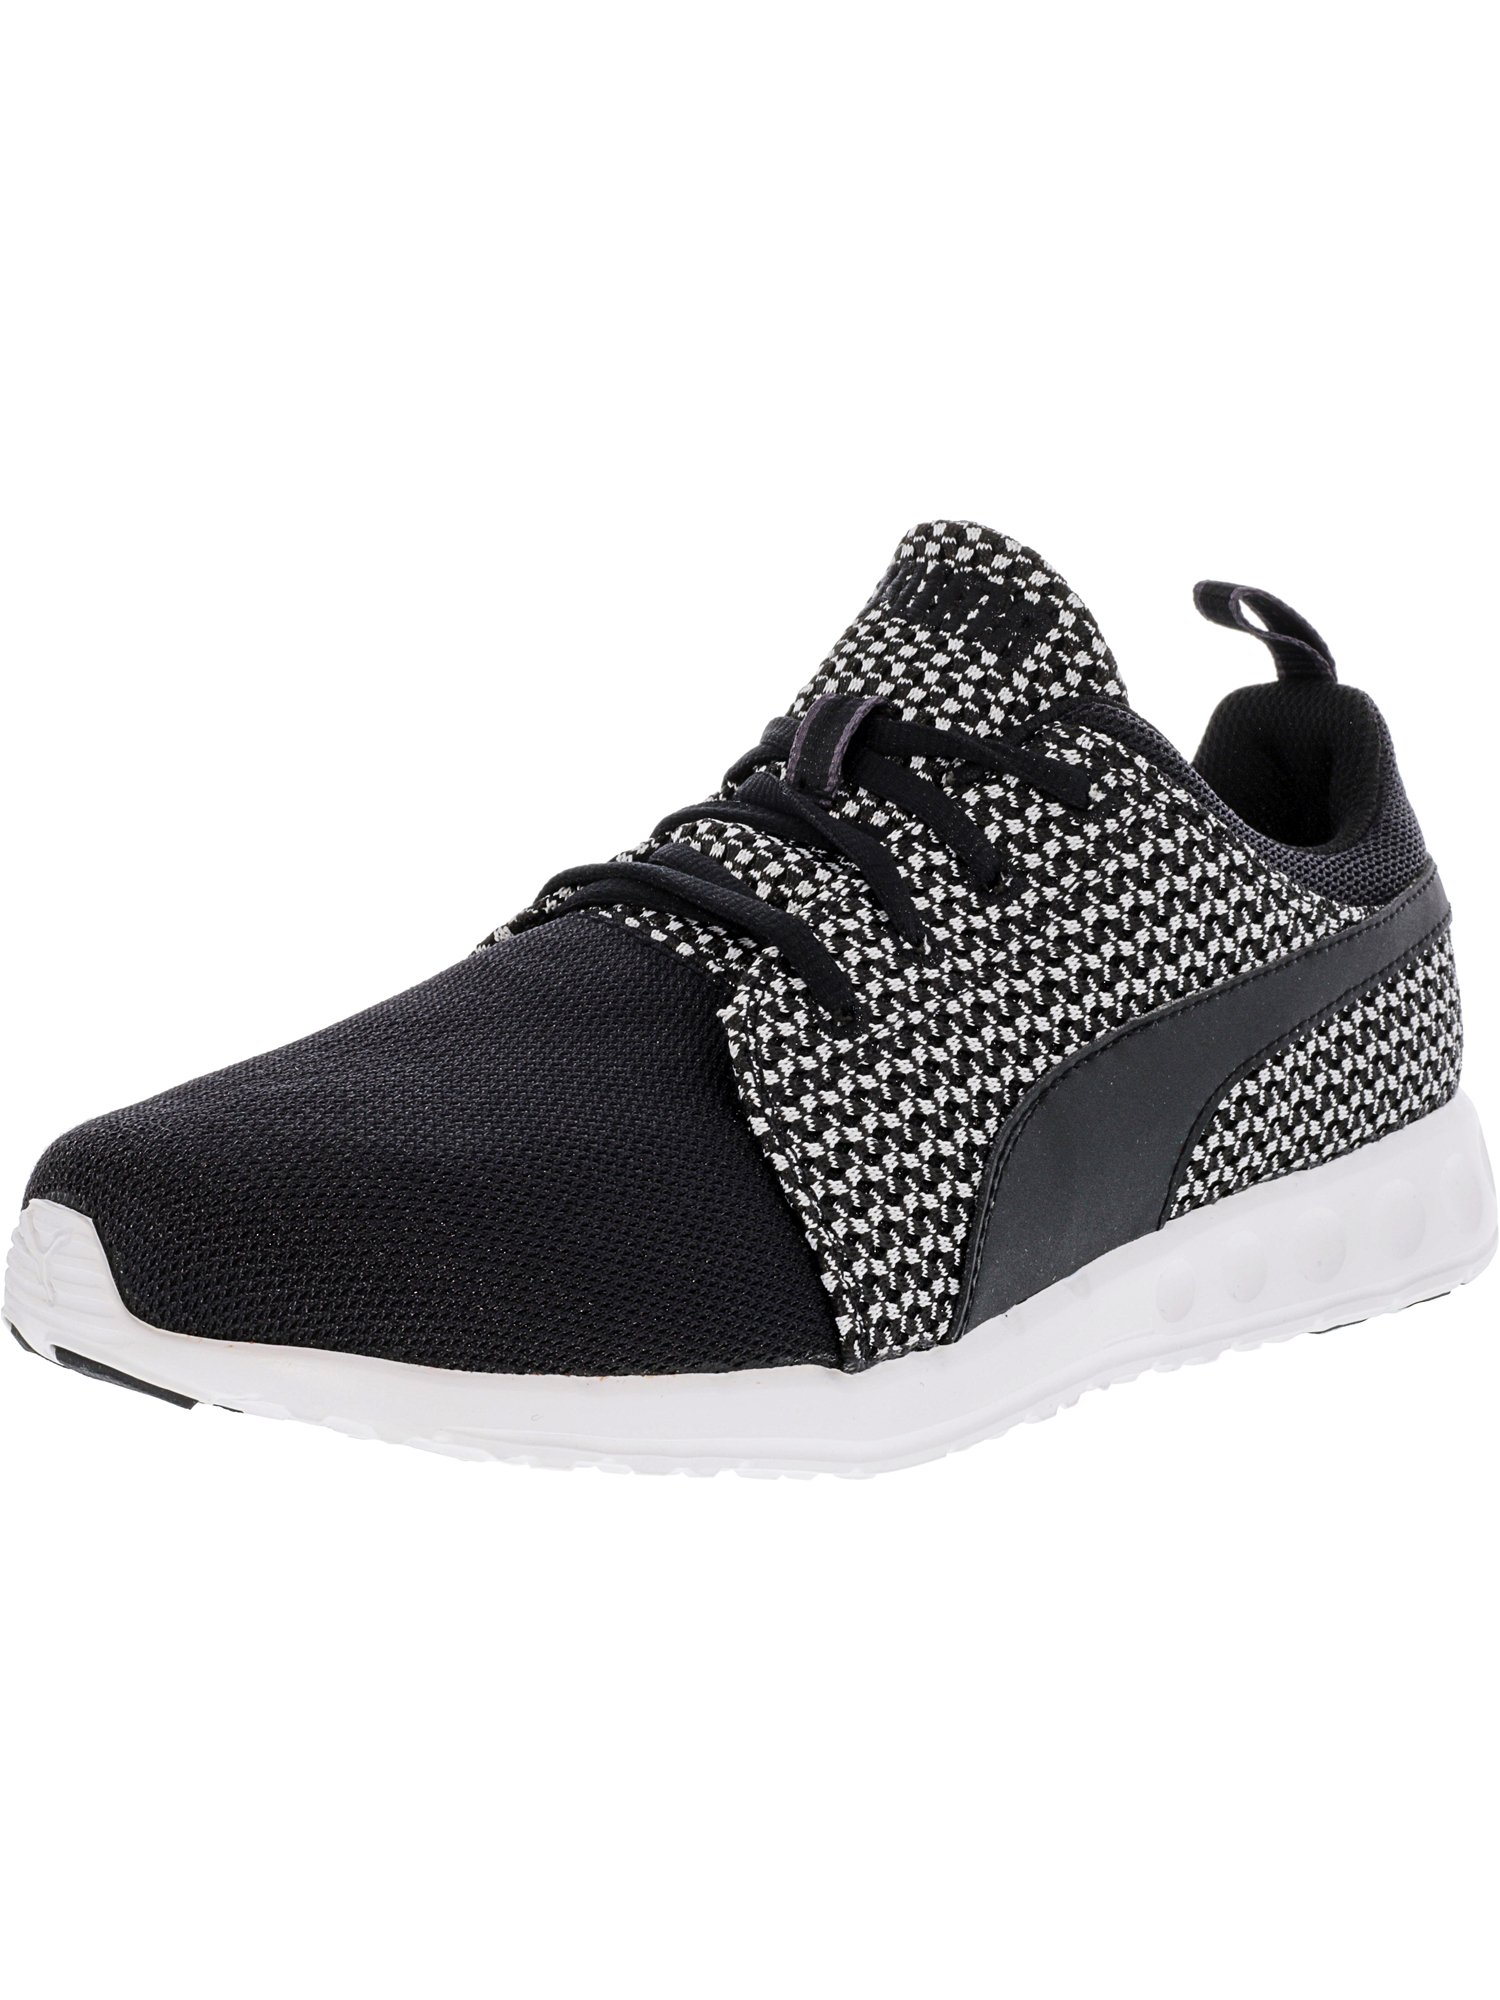 Puma Women s Carson Runner Knit Mesh Black   Star White Ankle ... 7e209092a